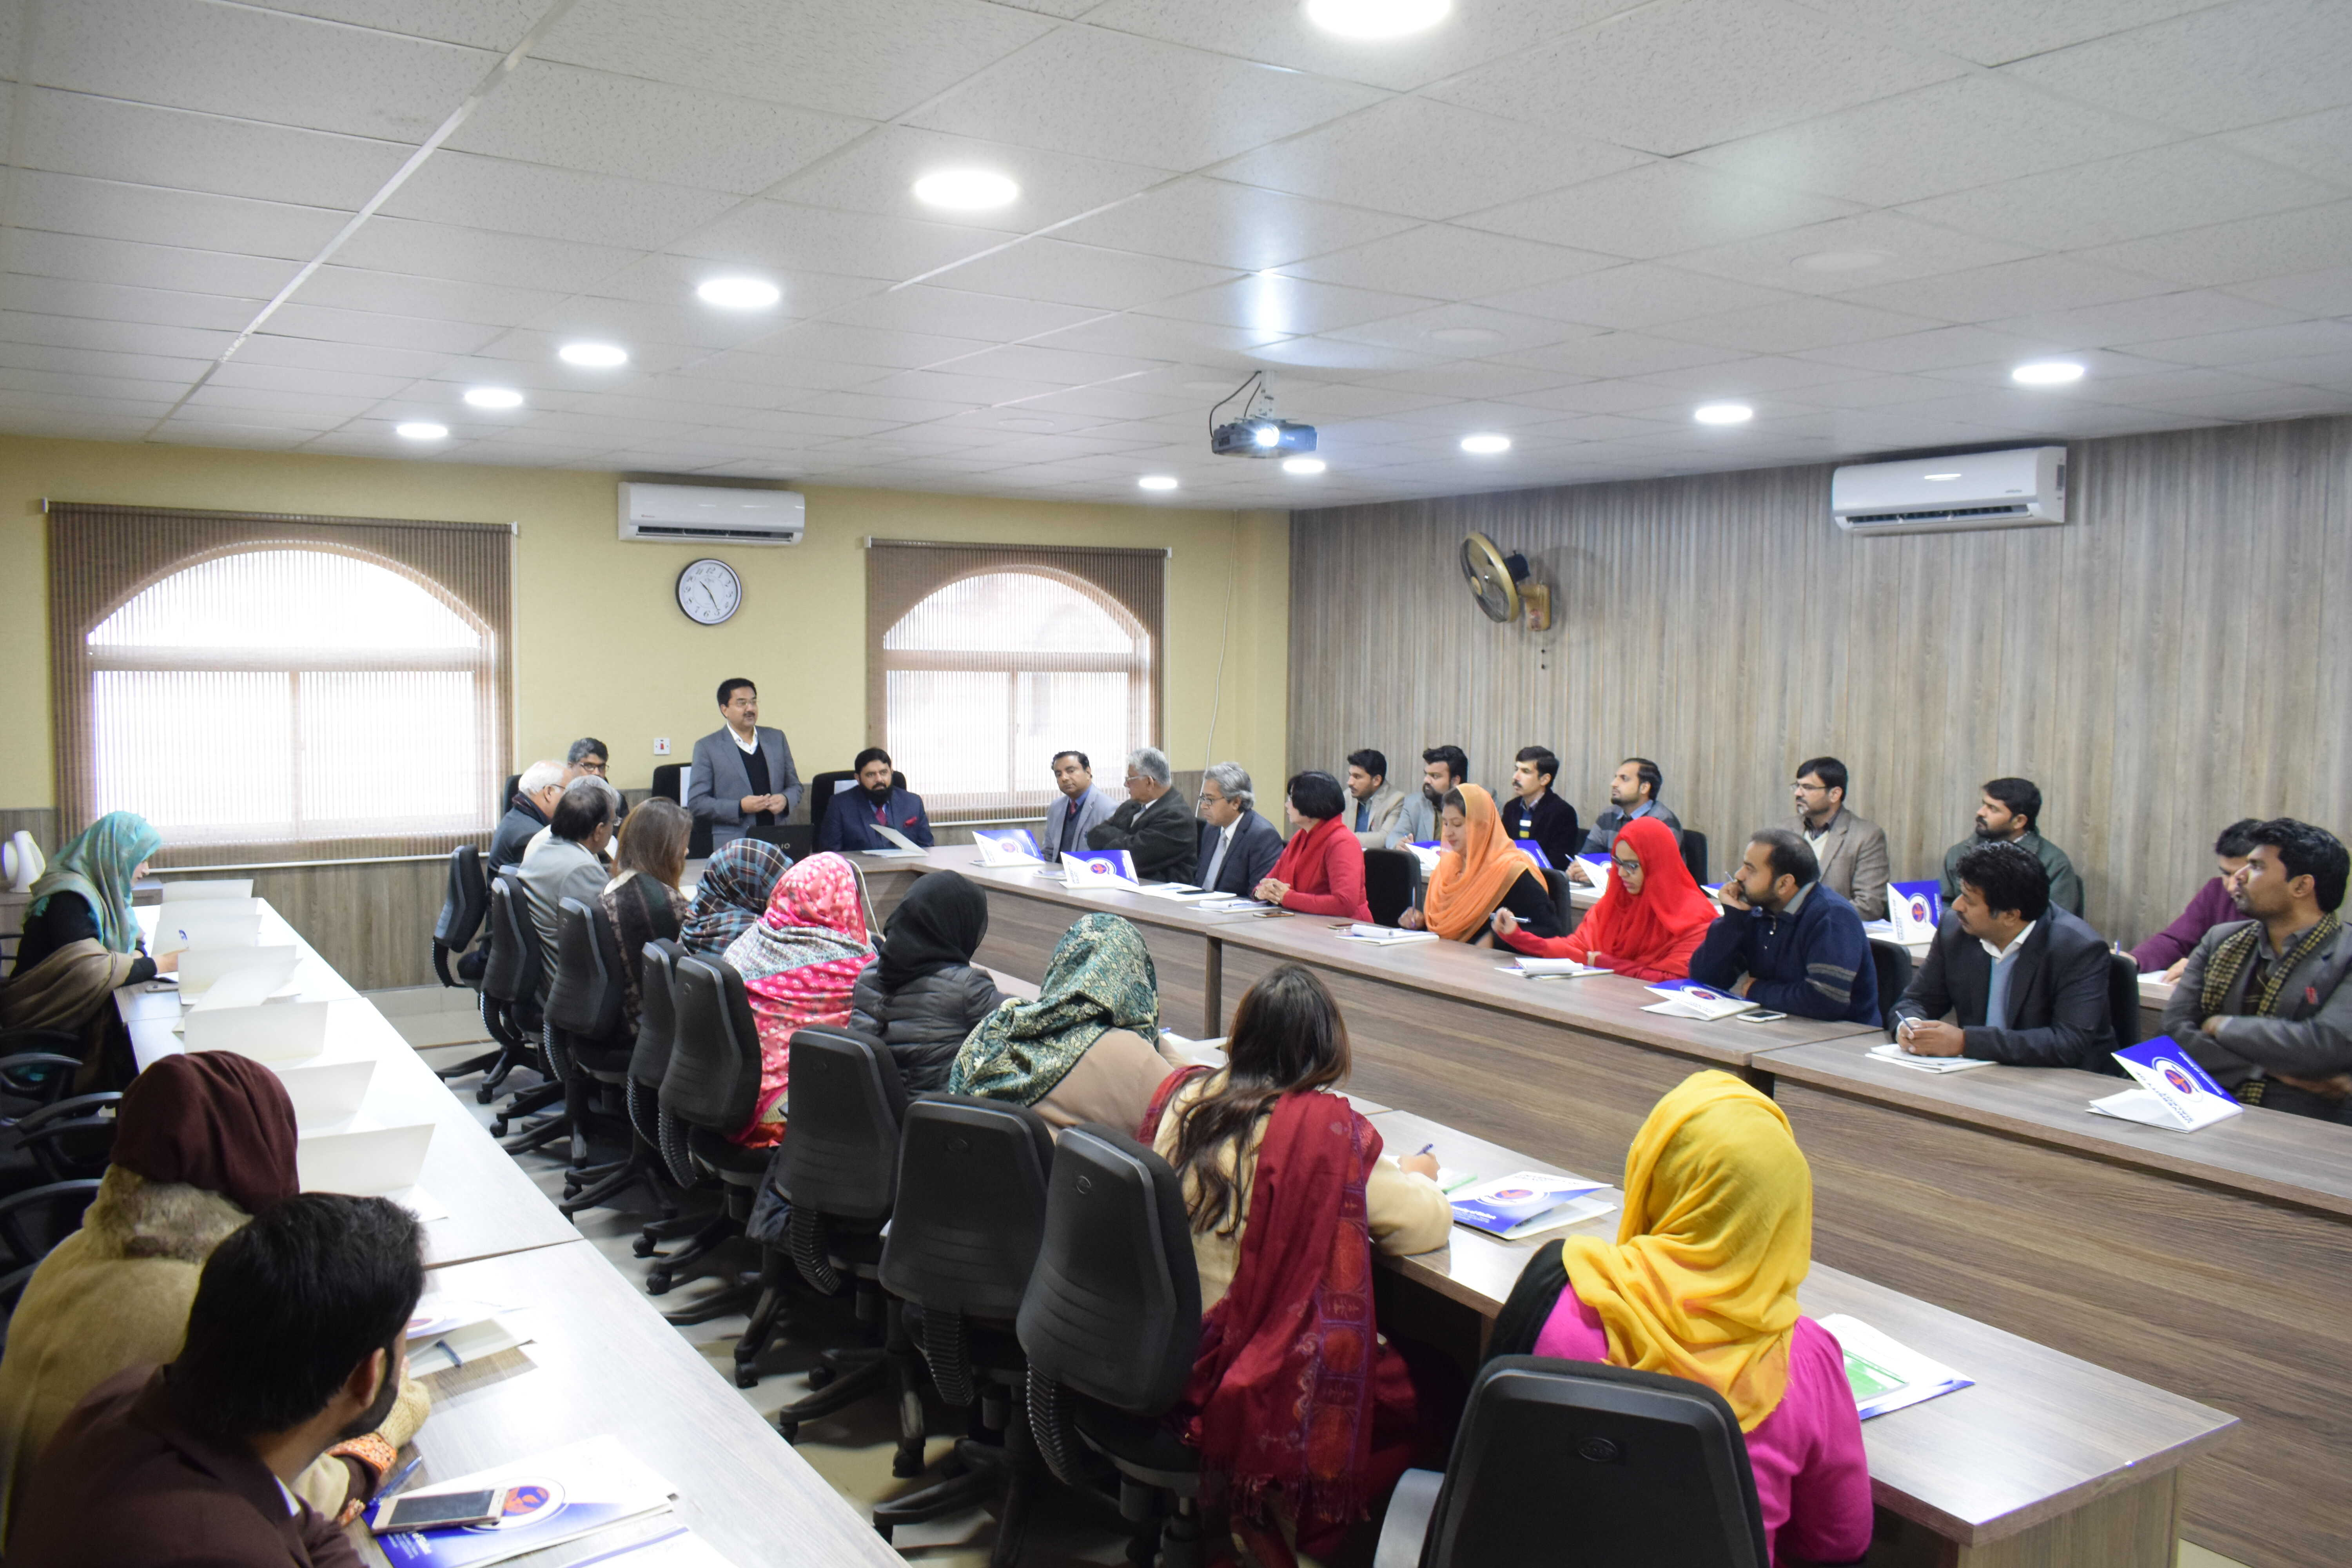 Quality Enhancement Cell (QEC) of USKT conducted a training session on Institutional Performance Evaluation. The guest speaker was Dr. Syed Ul Hassan Chishti, Director QEC, International Islamic University, Islamabad. Deans, HODs and Faculty members participated in the session.